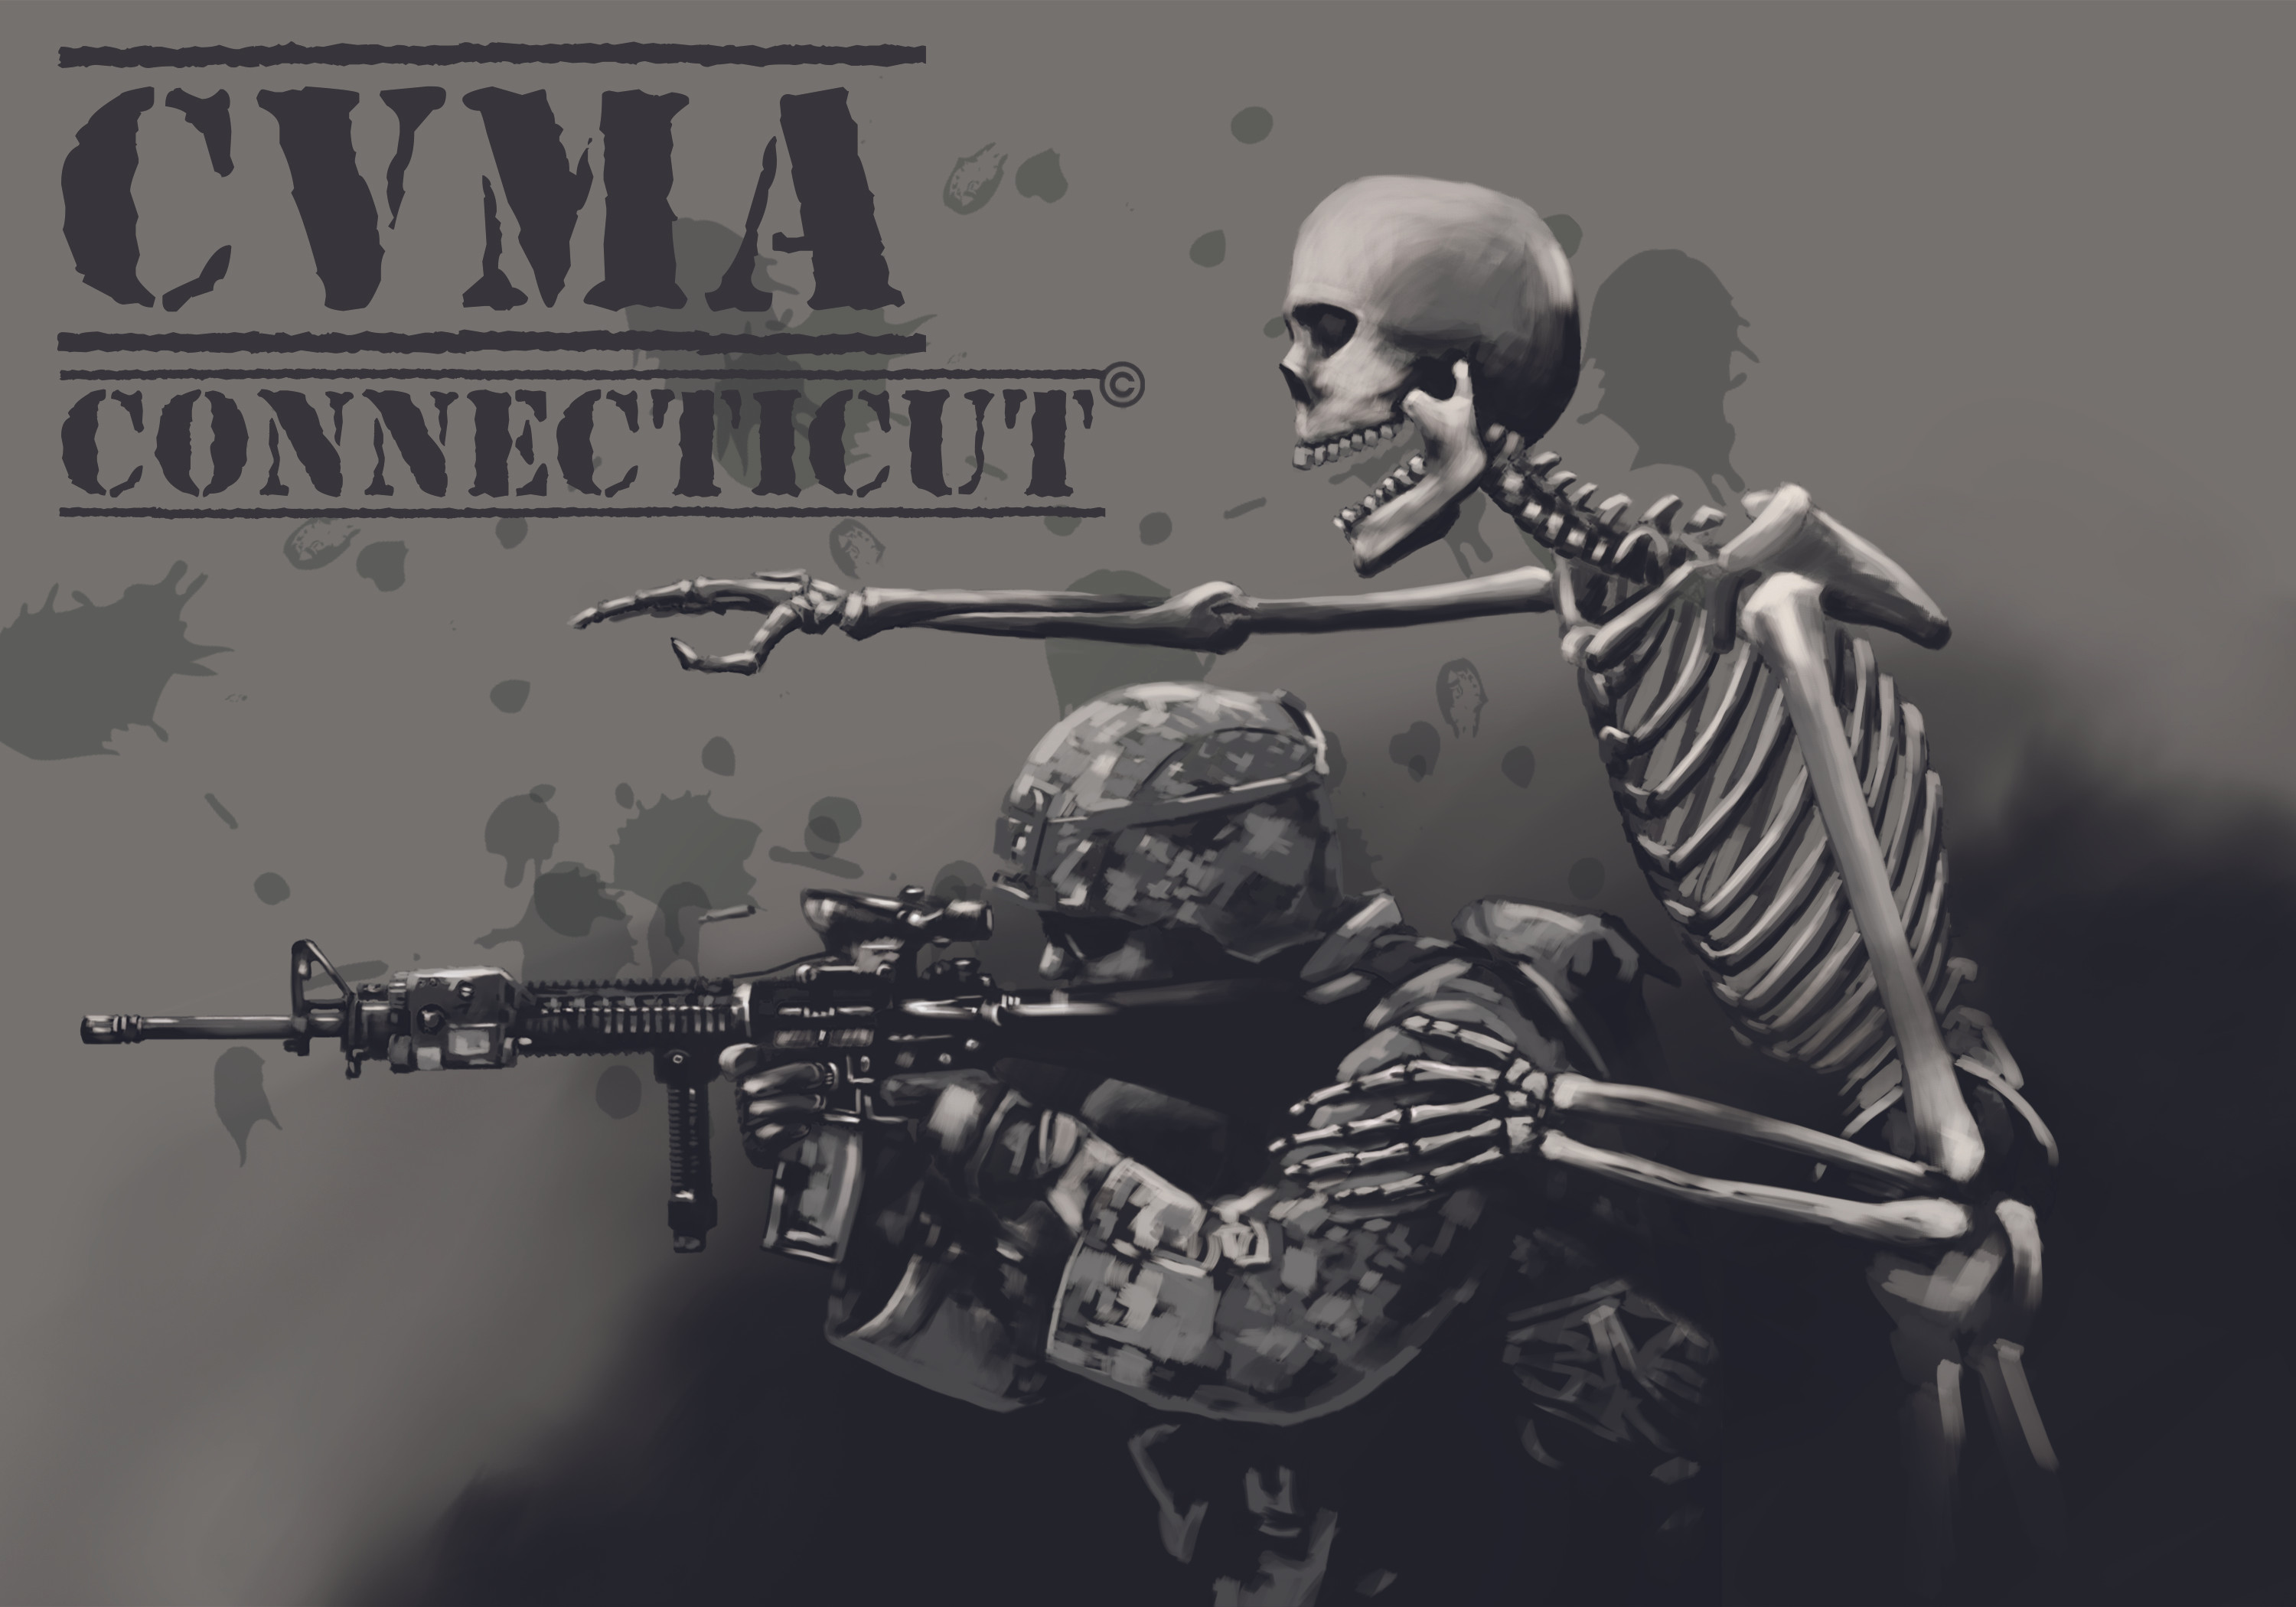 Commission for the Connecticut Combat Veteran Motorcycle Association .